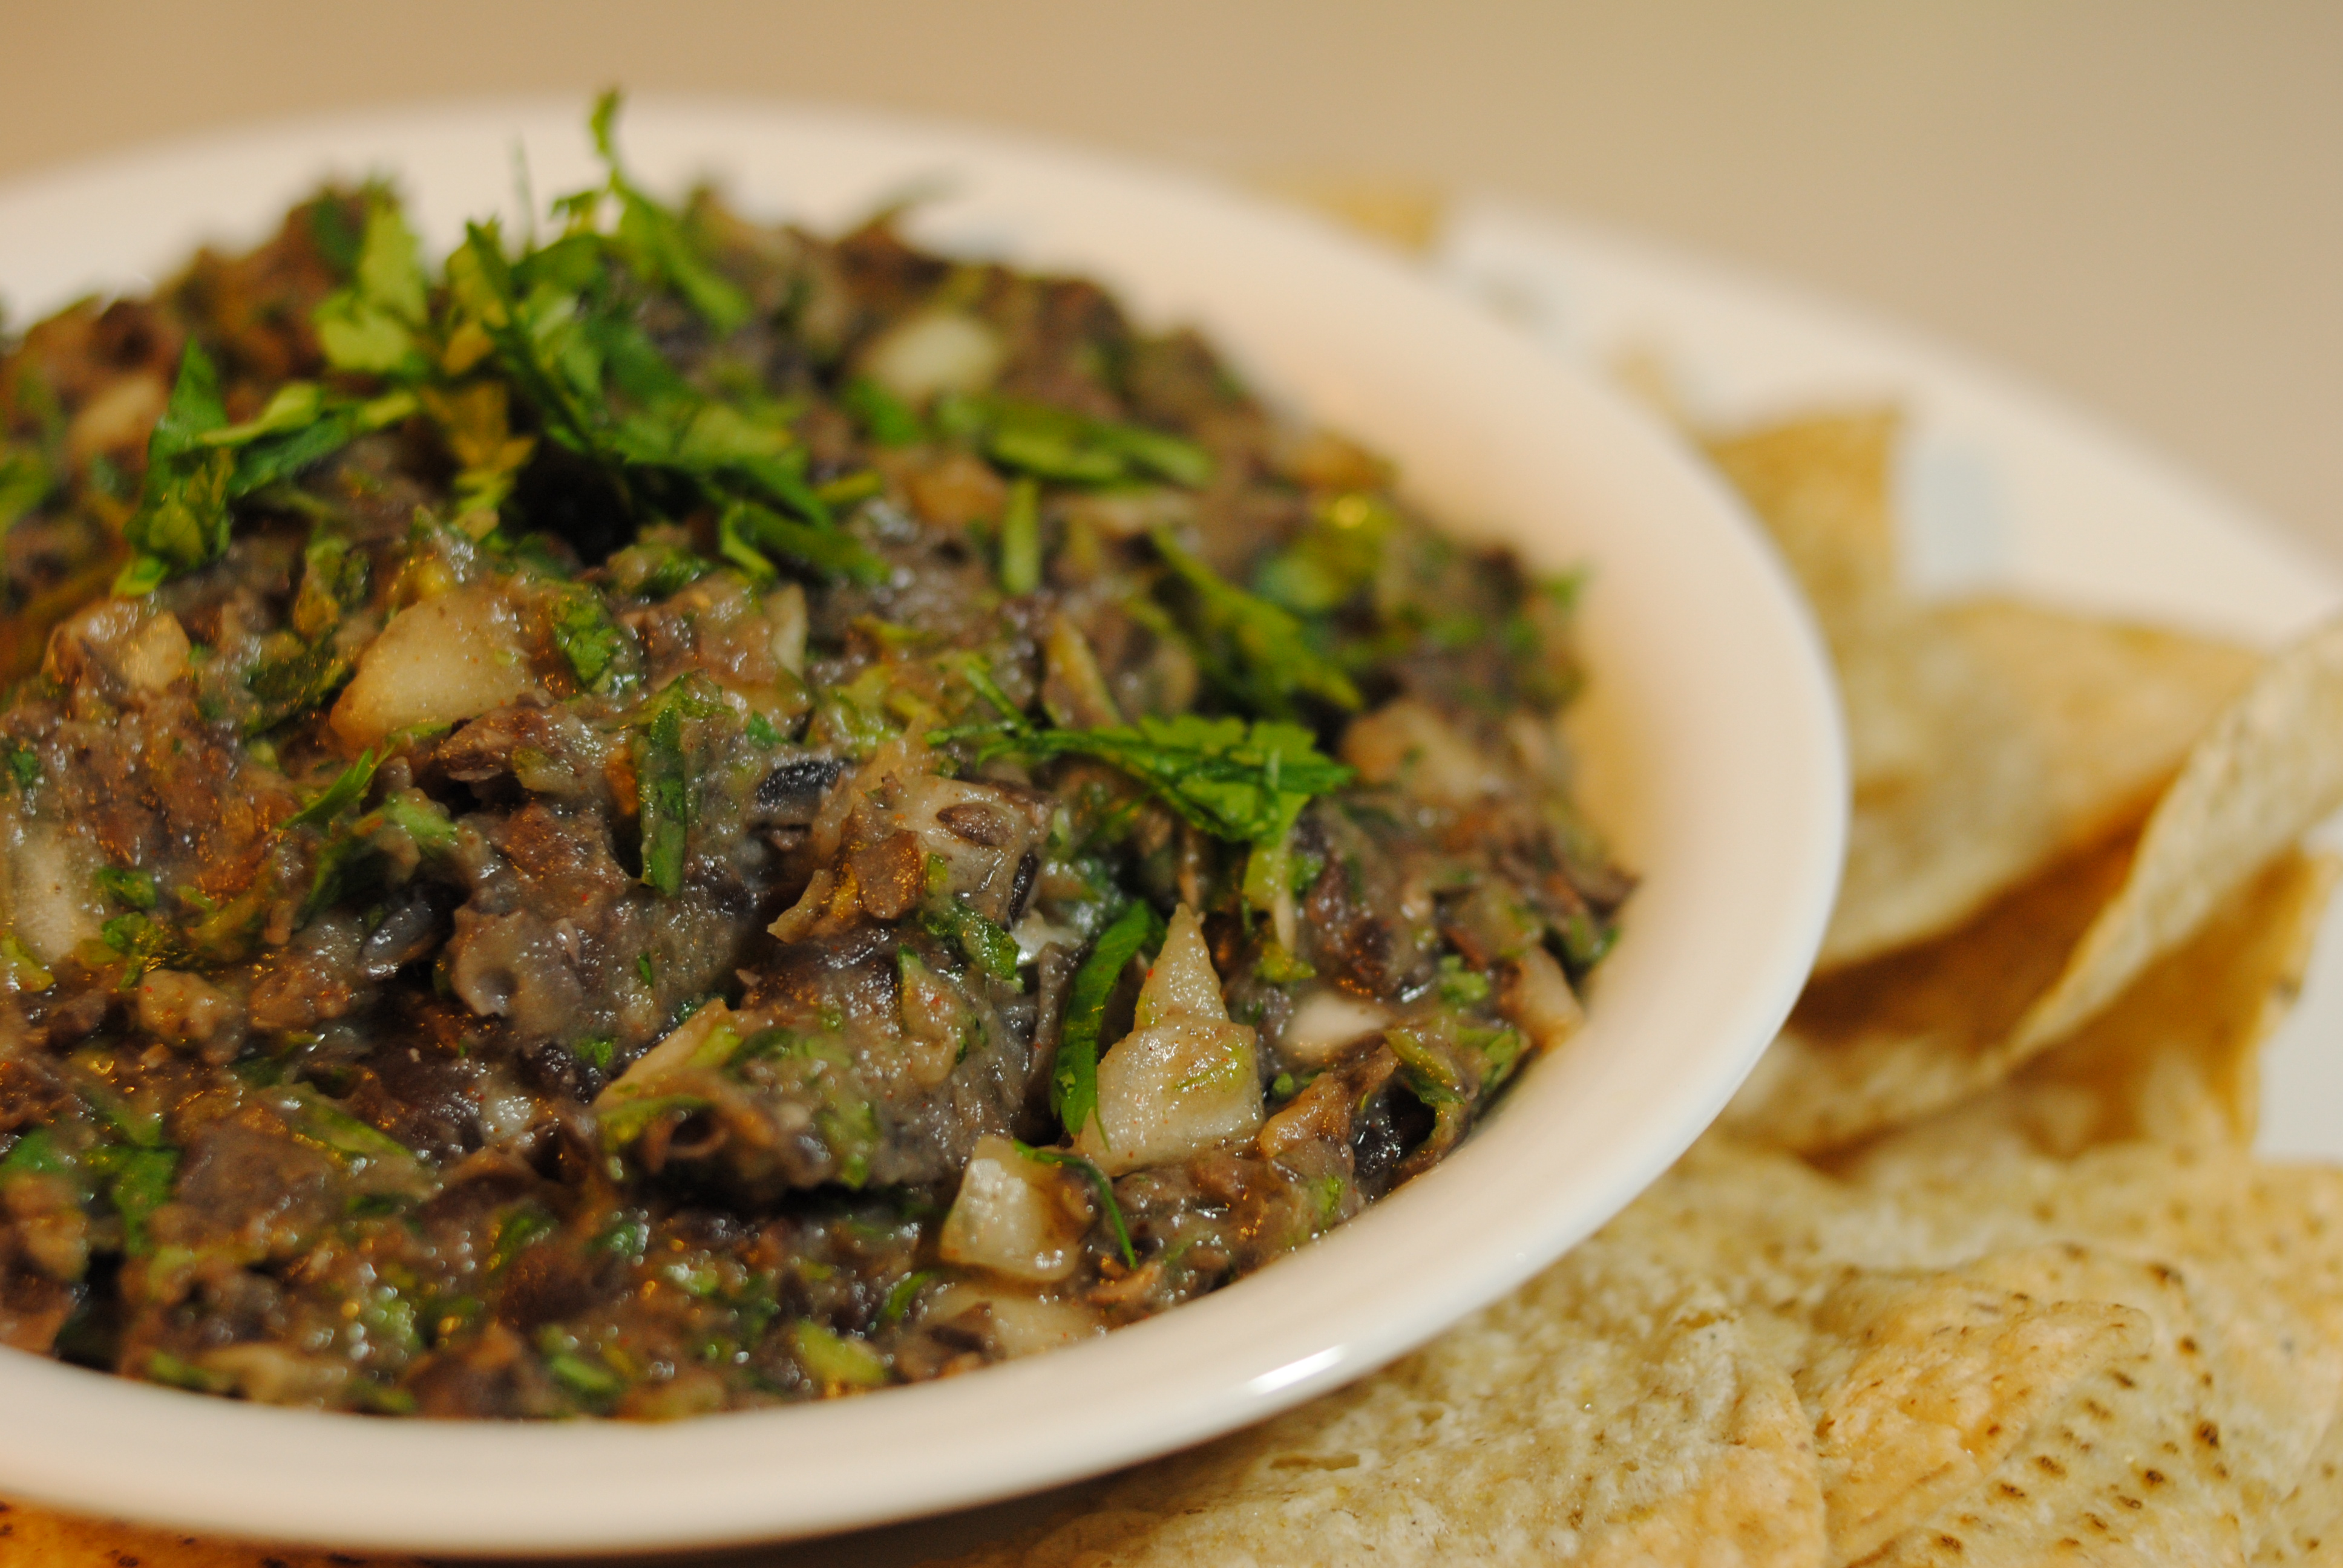 Agree, this Low fat veggie dip recipe can